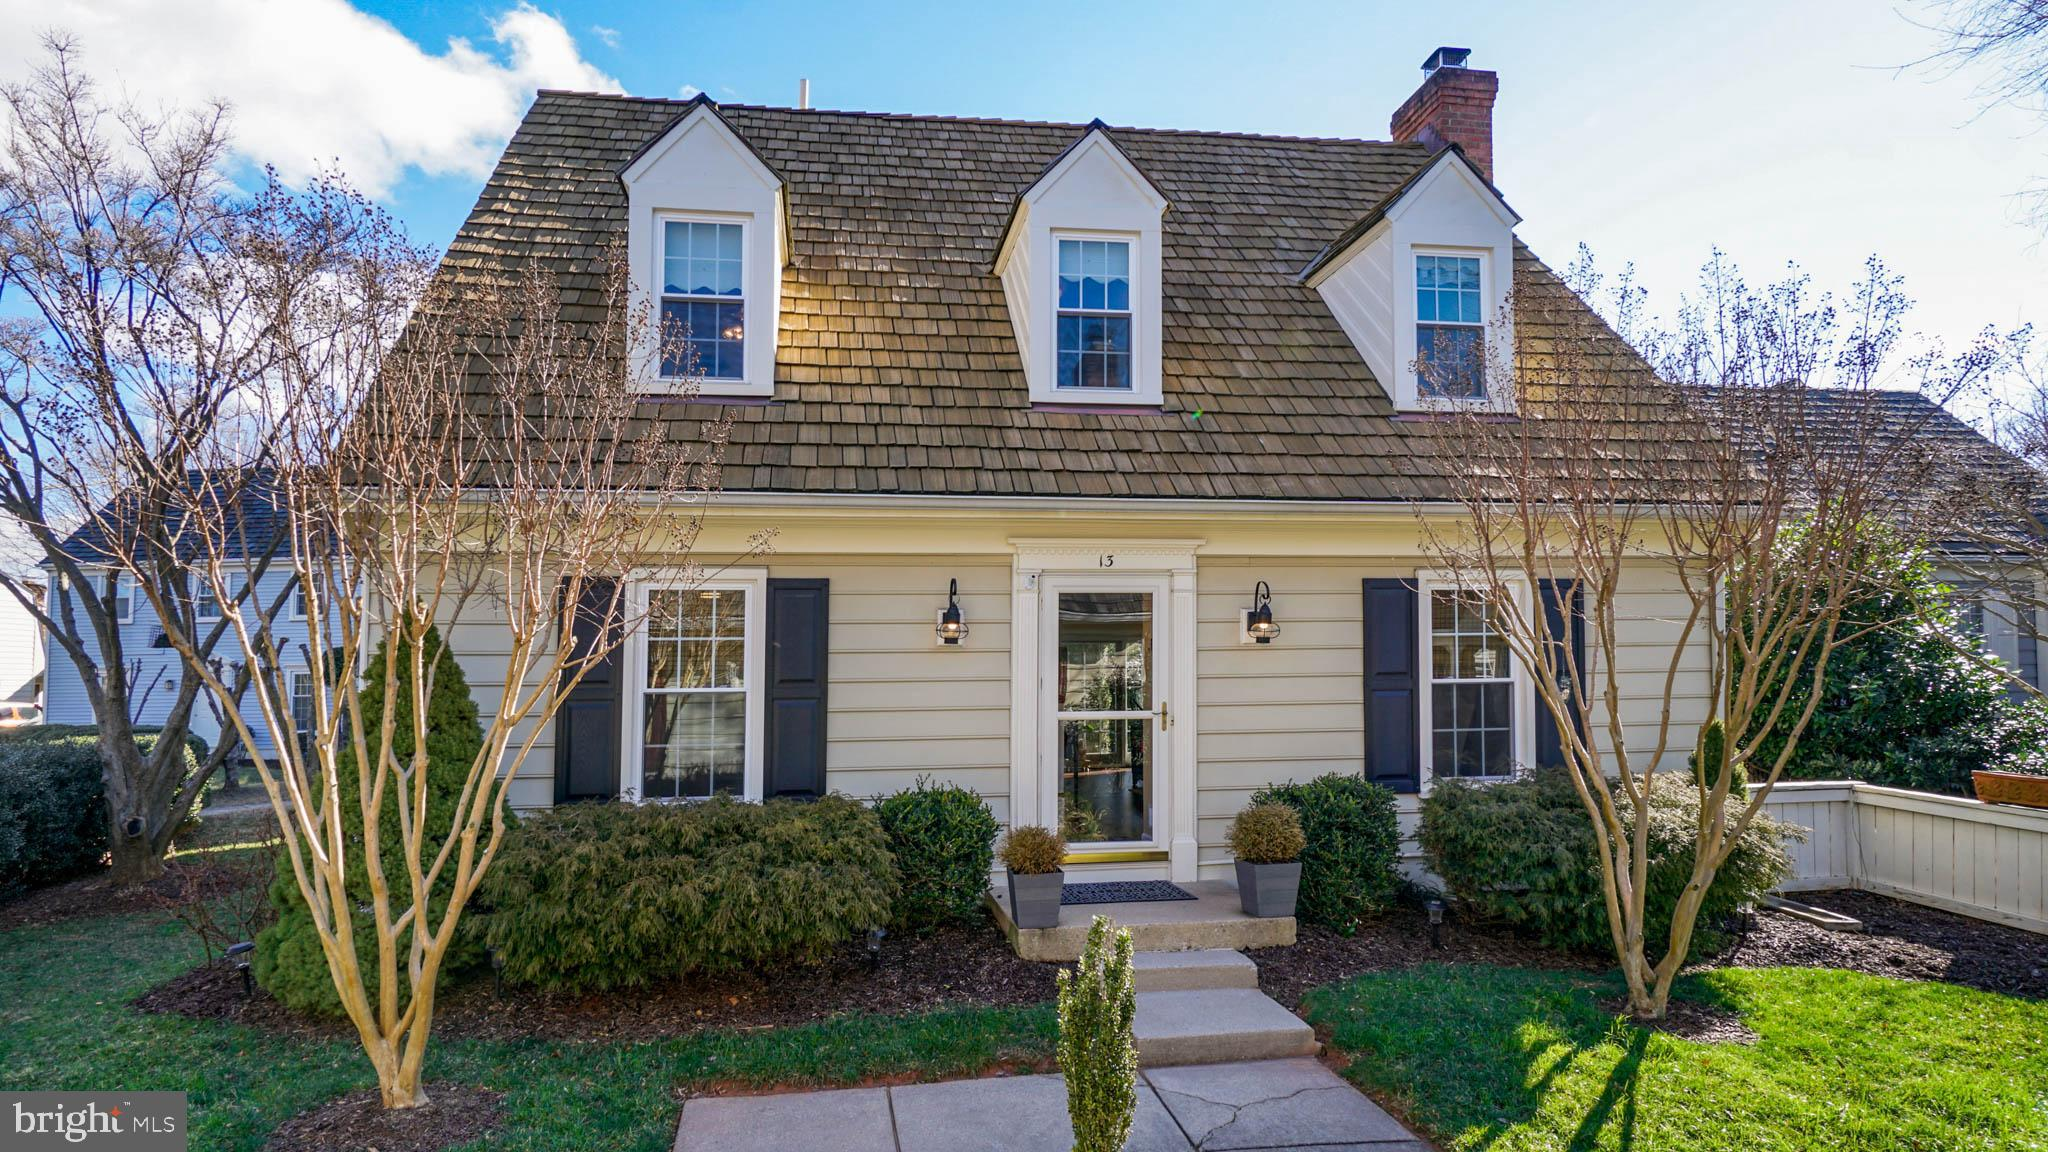 13 MEADOWGATE CIRCLE, GAITHERSBURG, MD 20877